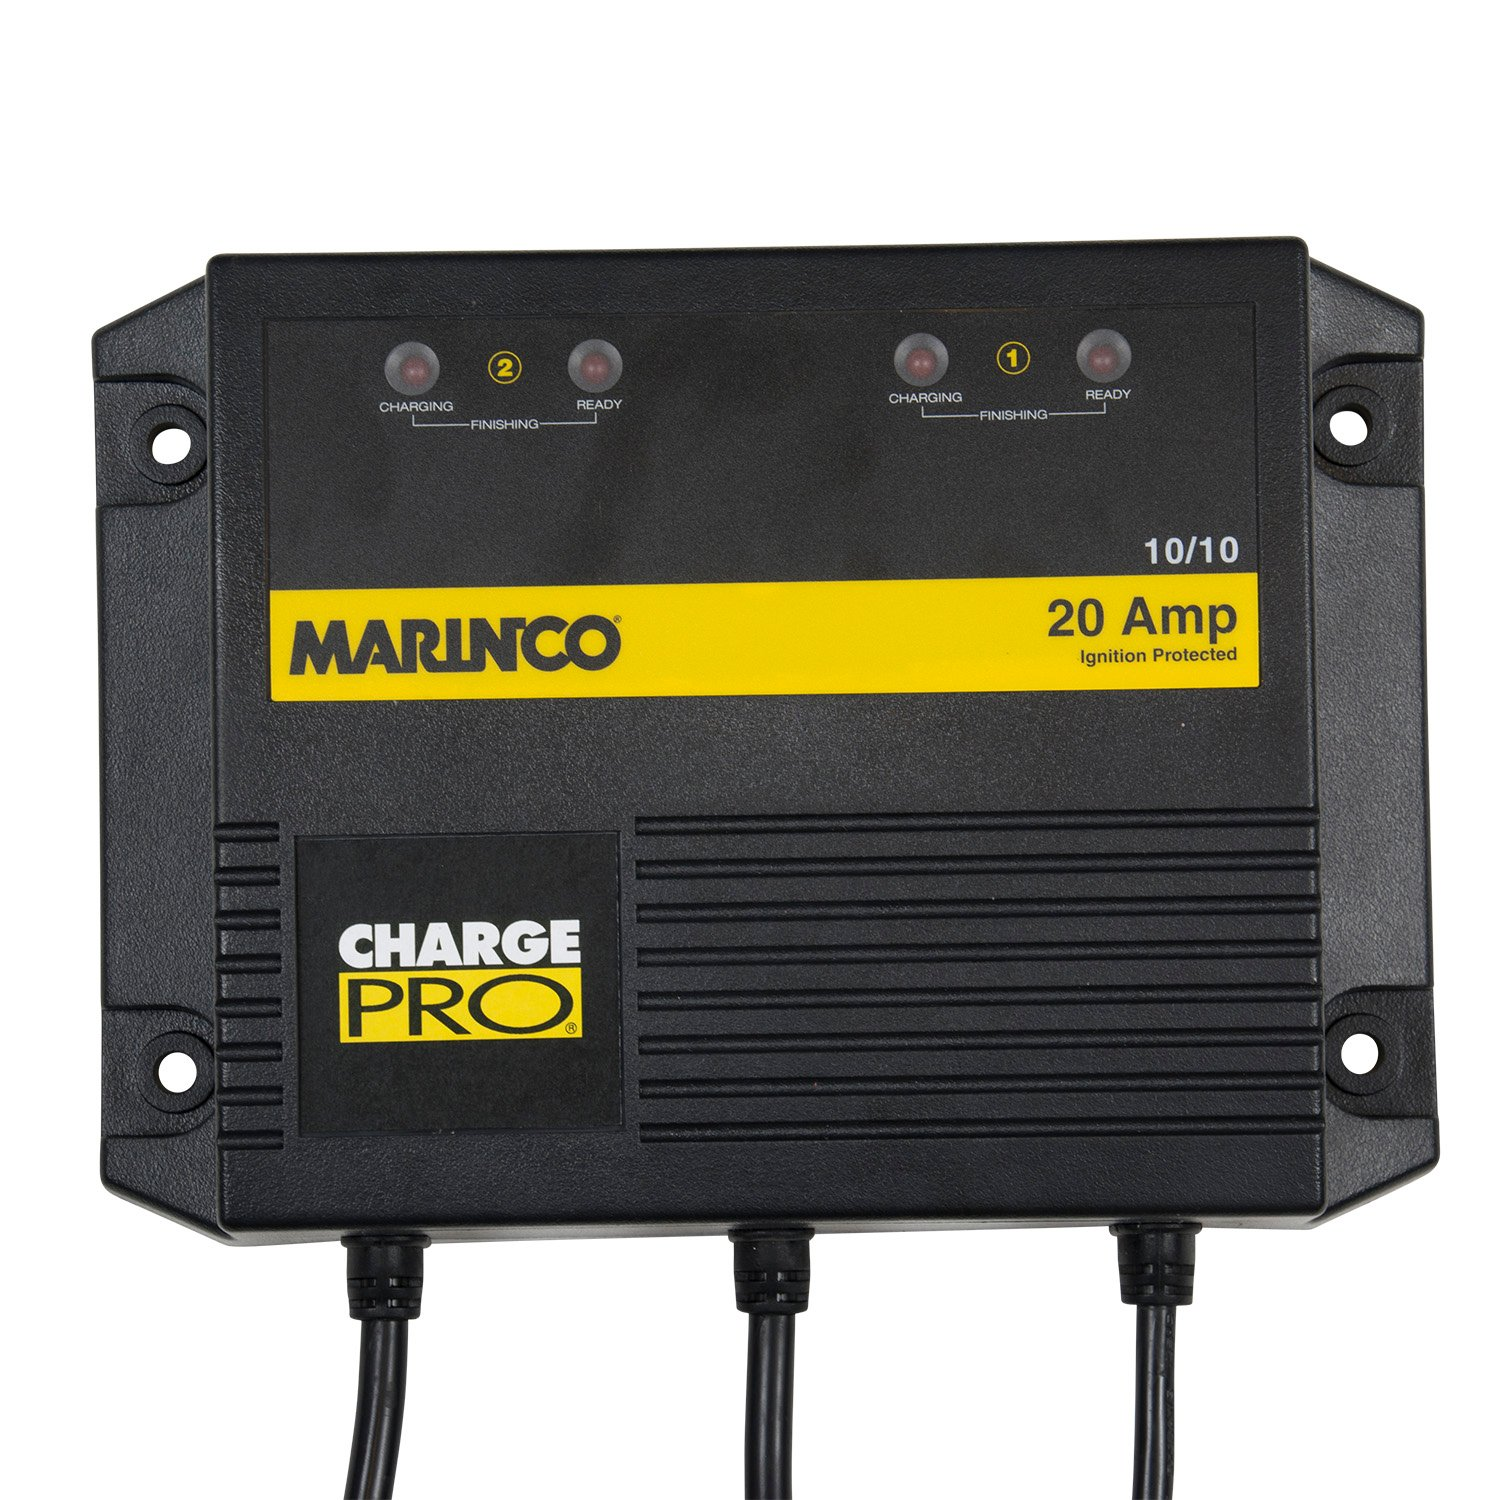 334424 23084?mw=410&mh=270 charger 20a (10 10) 12 24v 2 bank 120v input marinco on board wiring diagram for 2 bank onboard charger at readyjetset.co